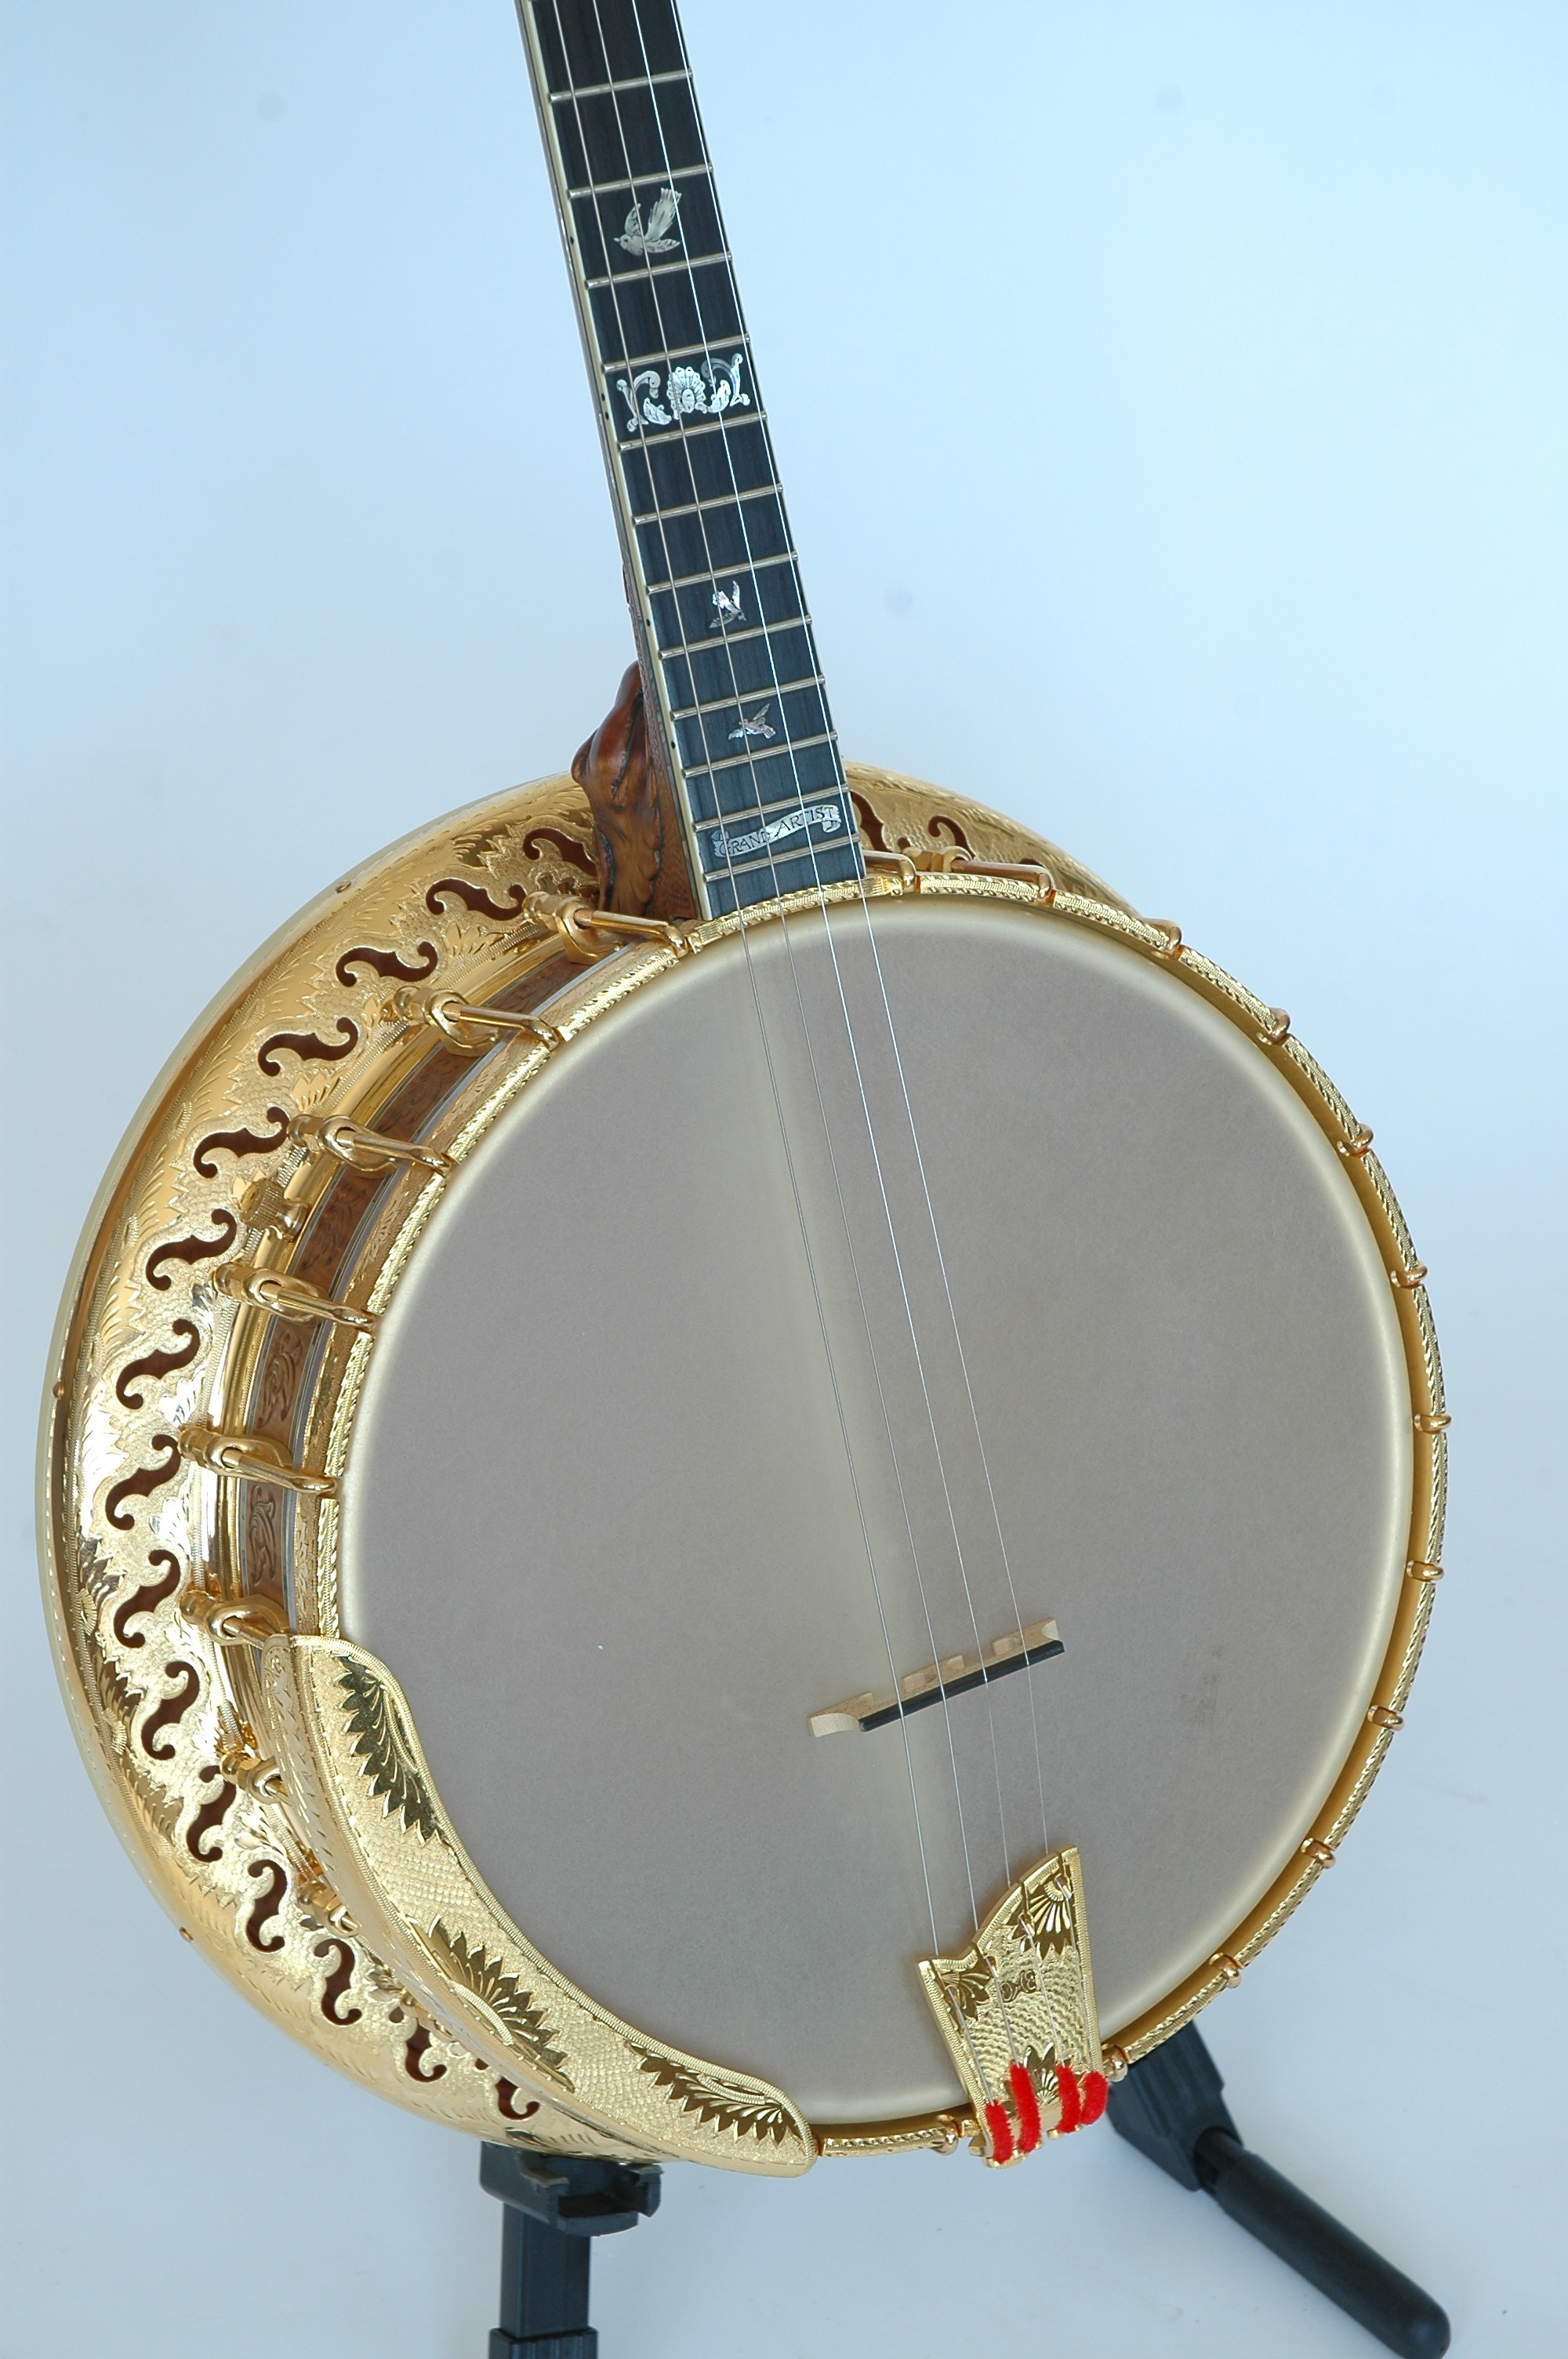 Ome Grand Artist Spring Banjo Silverbell